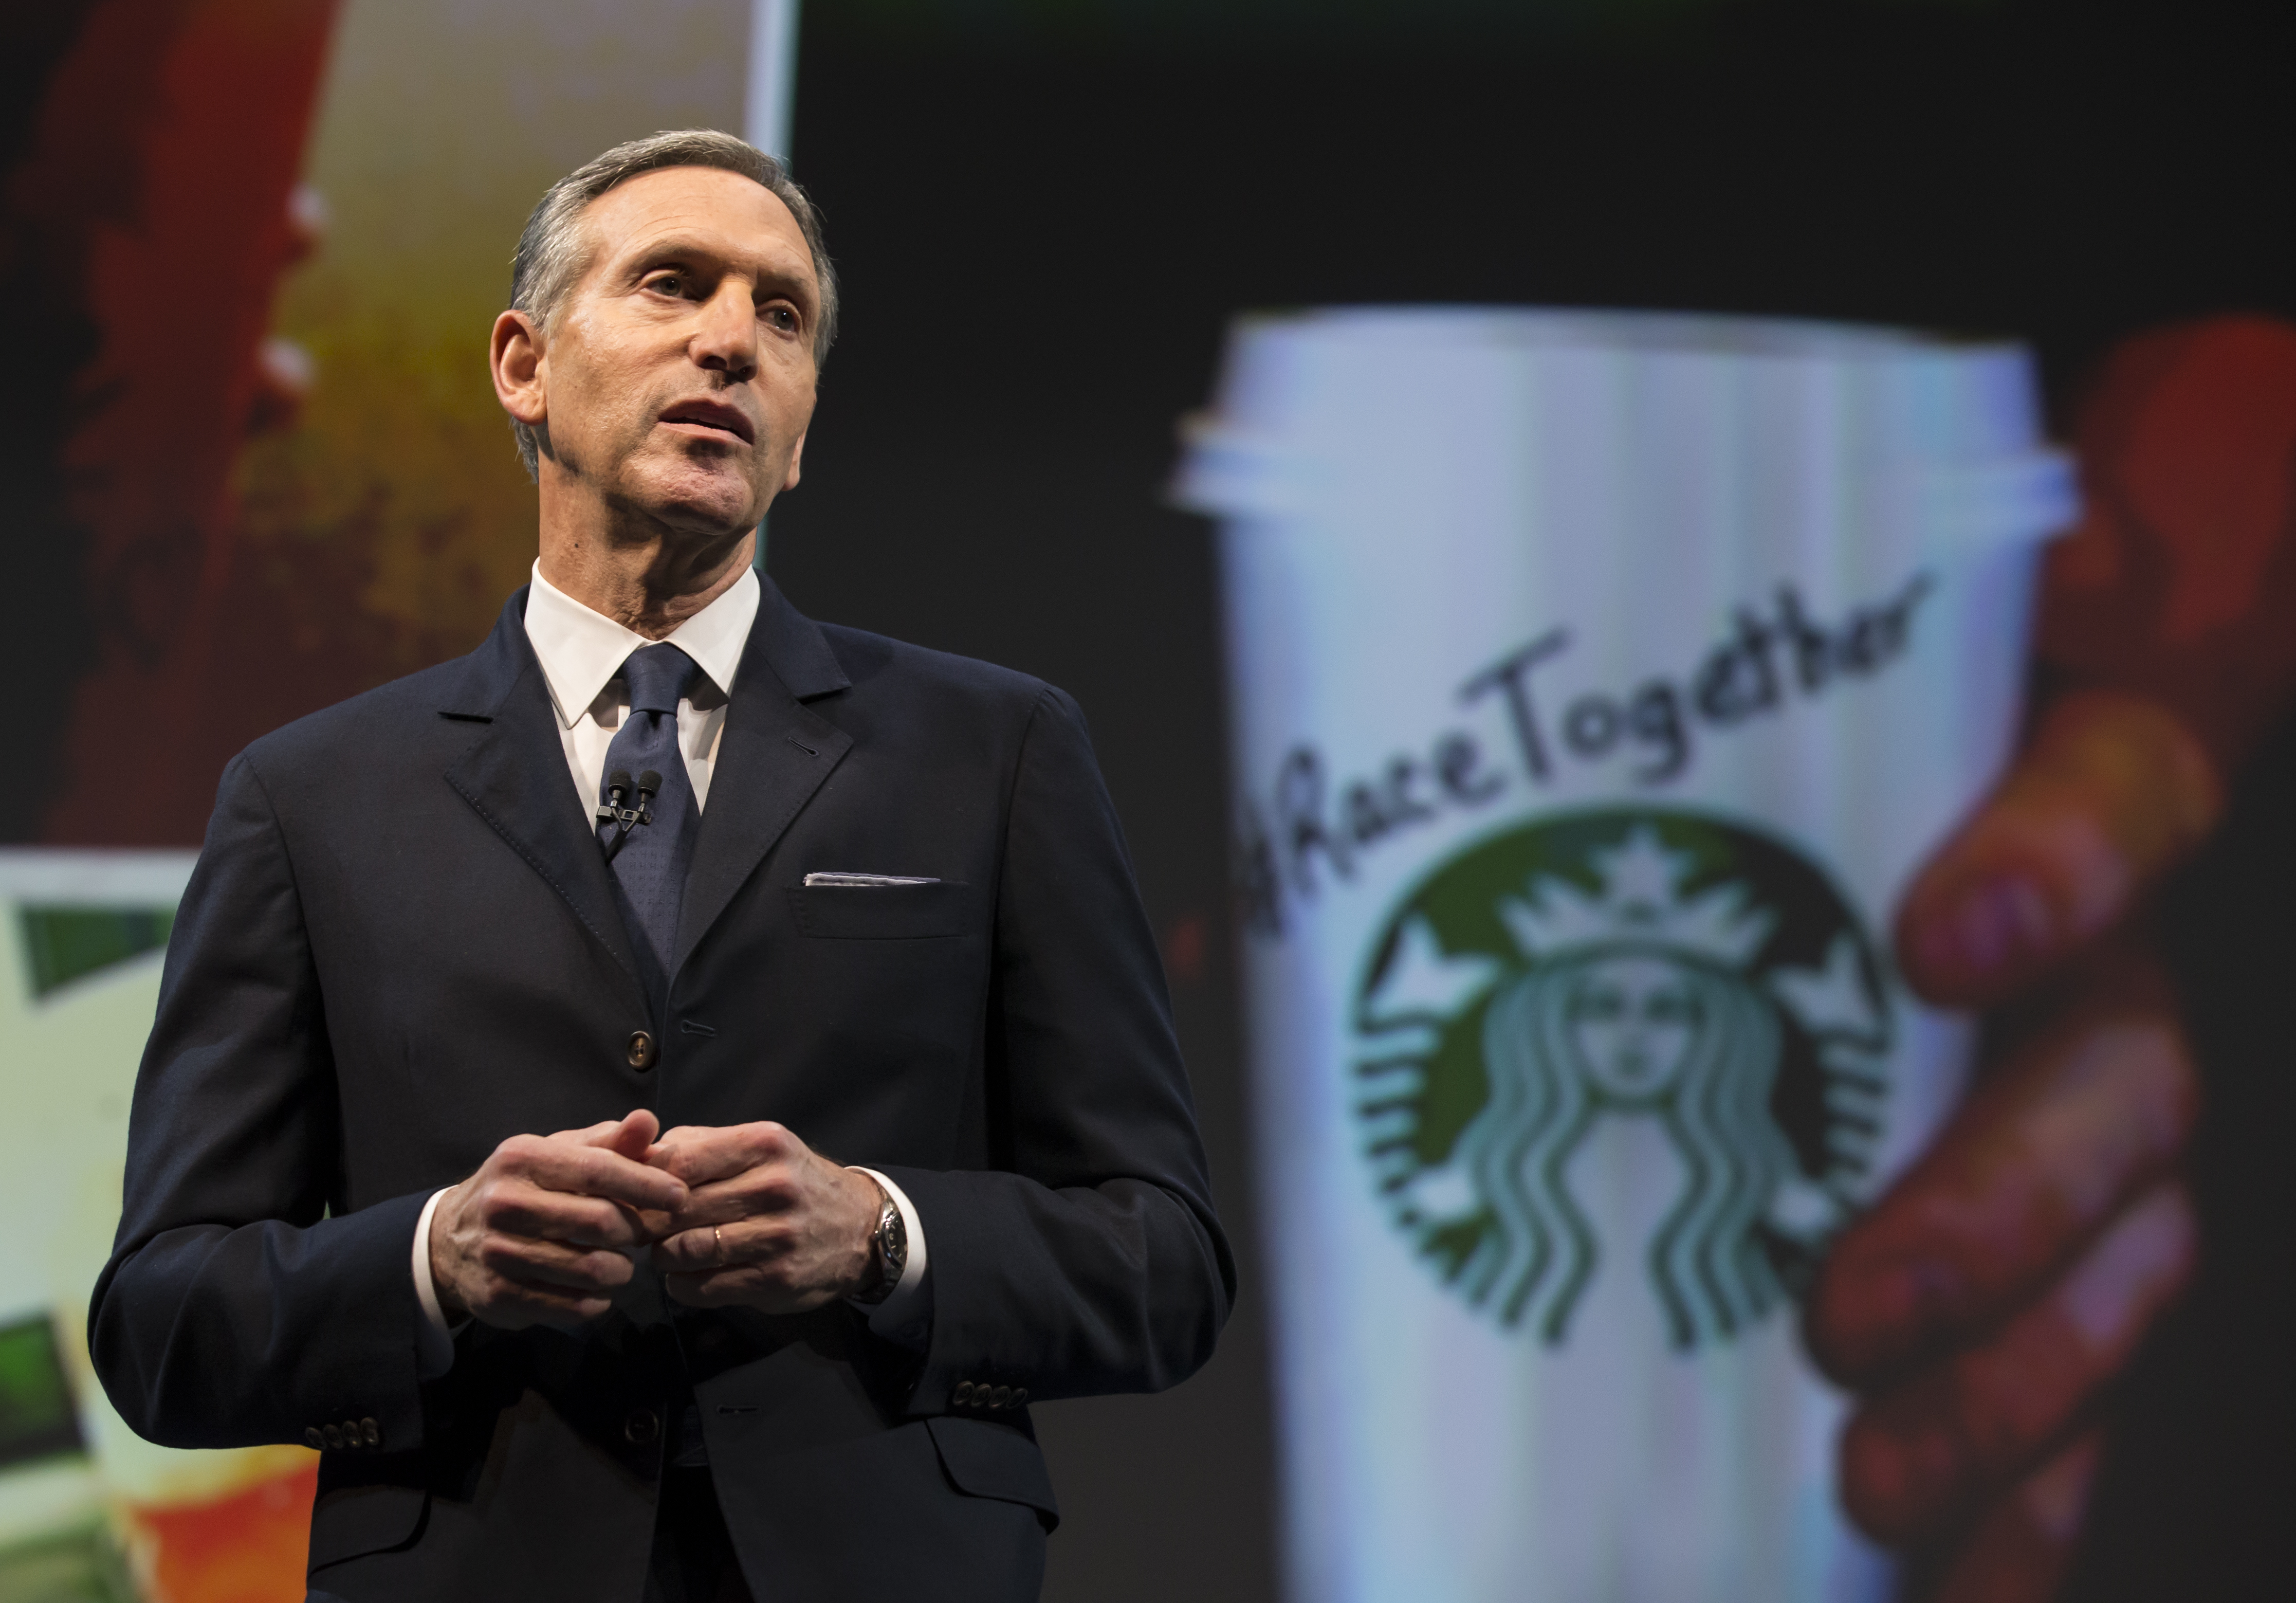 Starbucks Chairman and CEO Howard Schultz addresses the  Race Together Program  during the Starbucks annual shareholders meeting  on March 18, 2015 in Seattle, Wash.